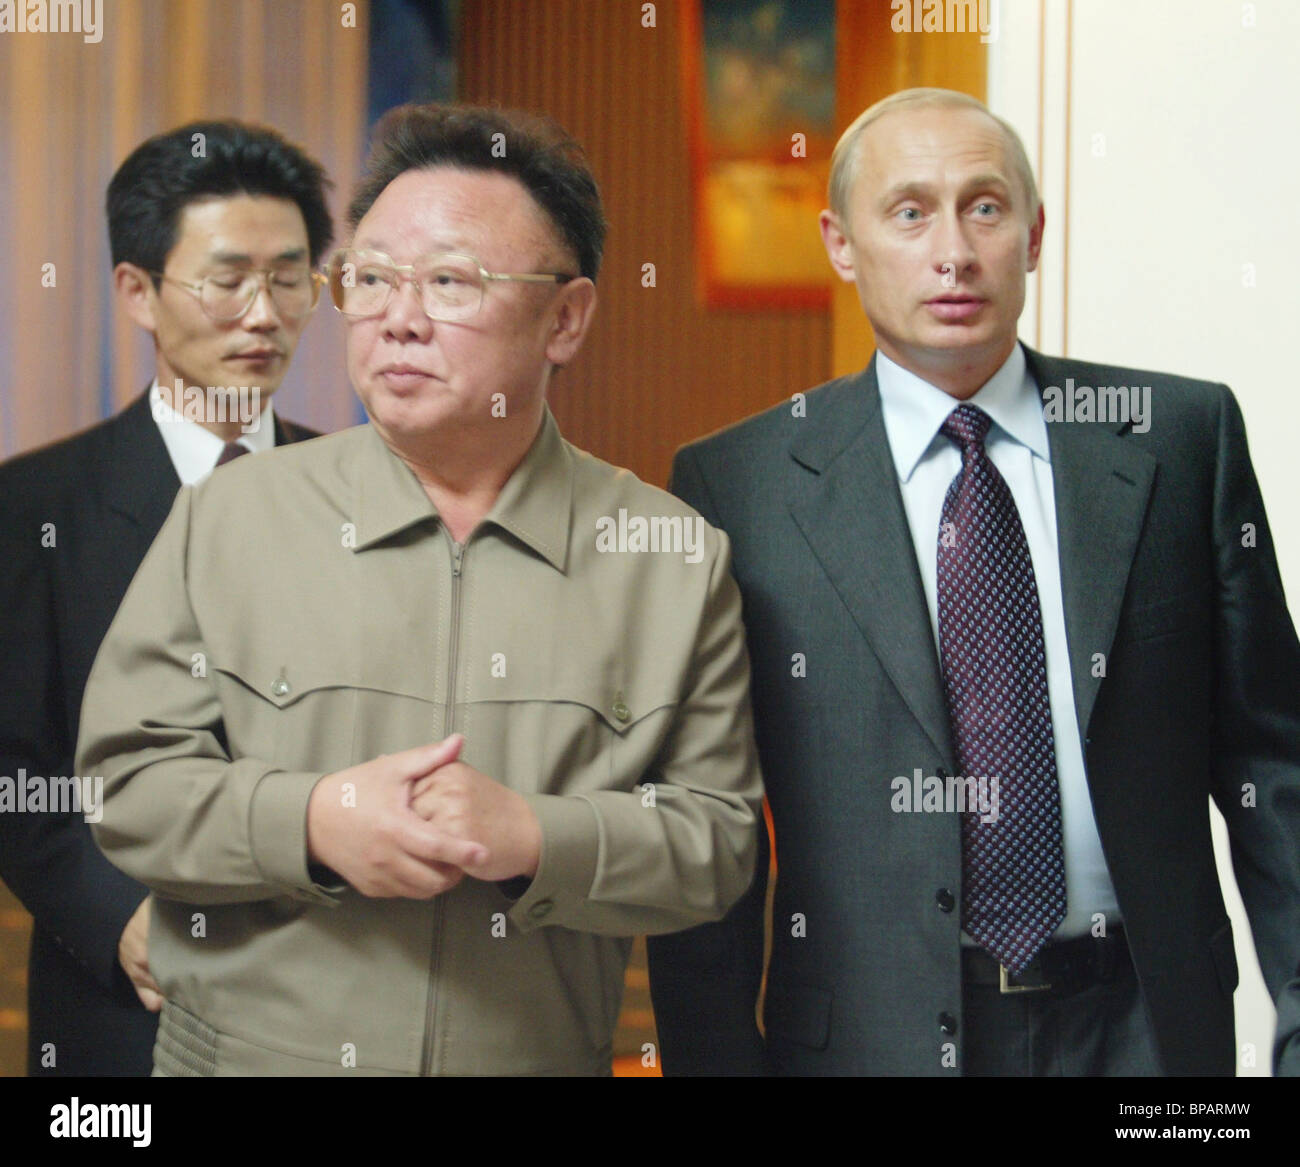 DPRK Embassy in Damascus commemorates 6th anniversary of leader ...